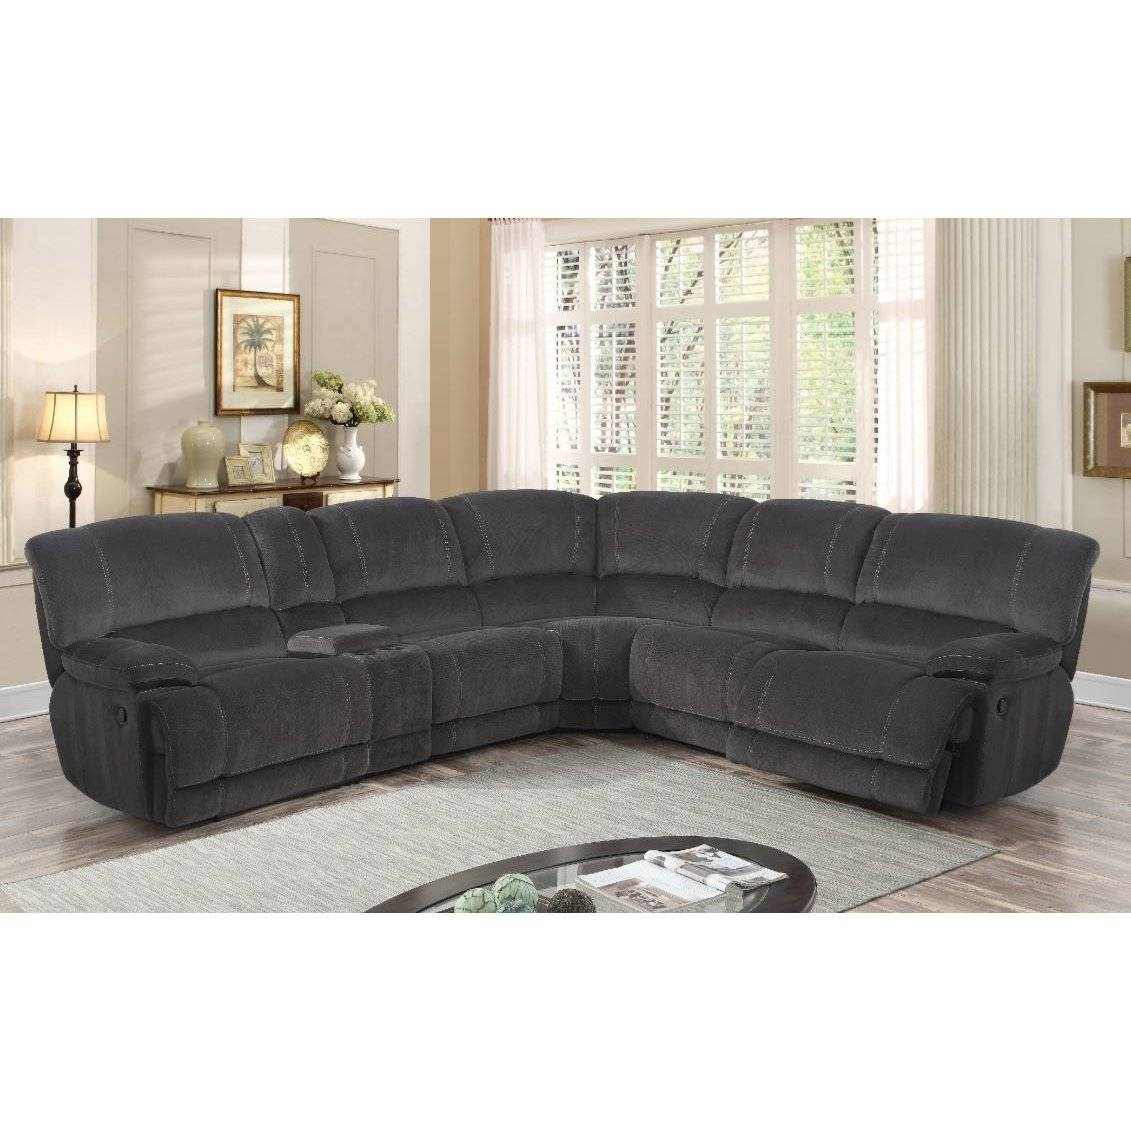 Remarkable Most Comfortable Sectional Sofas 29 With Additional throughout Vintage Leather Sectional Sofas (Image 22 of 30)